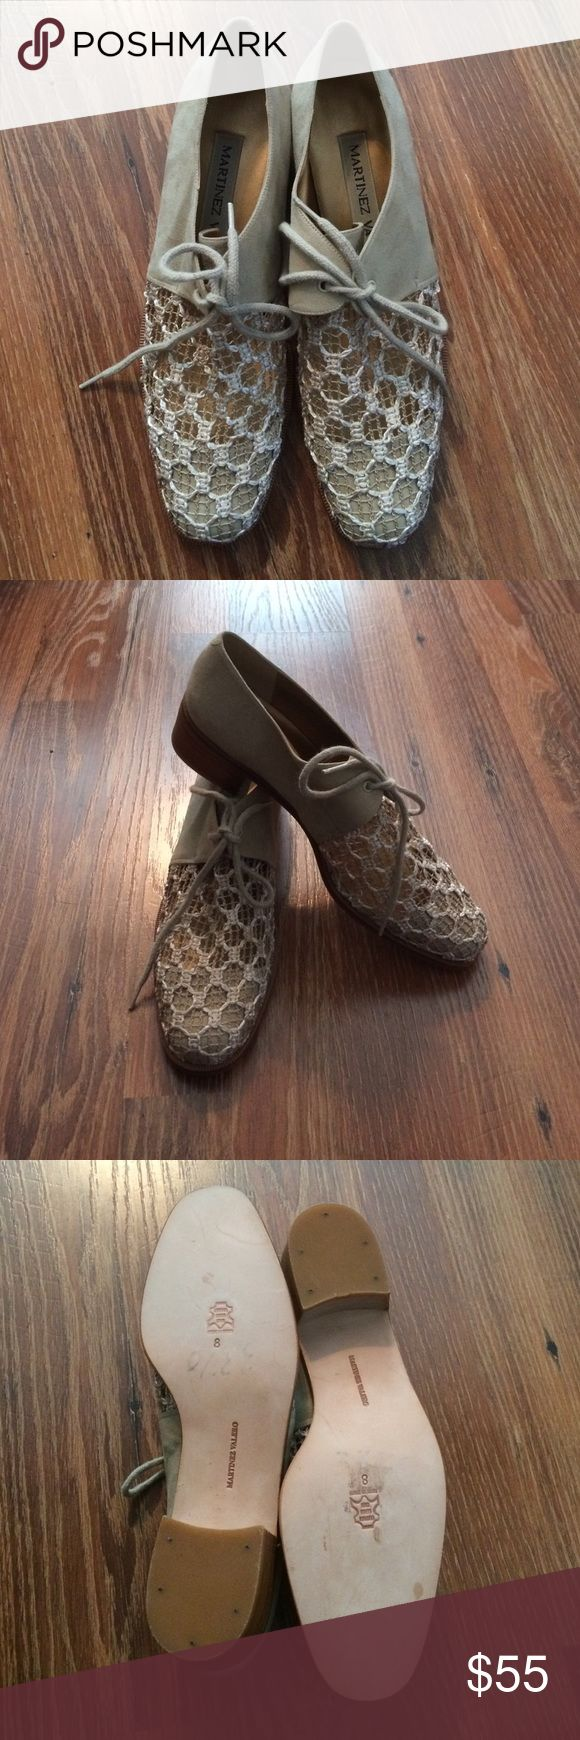 Martinez Valero Lace Oxfords These are gorgeous new never worn Martinez Valero lace and suede oxfords.  Made in Spain.  Size 8 will cinder reasonable offers👍🏻 Martinez Valero Shoes